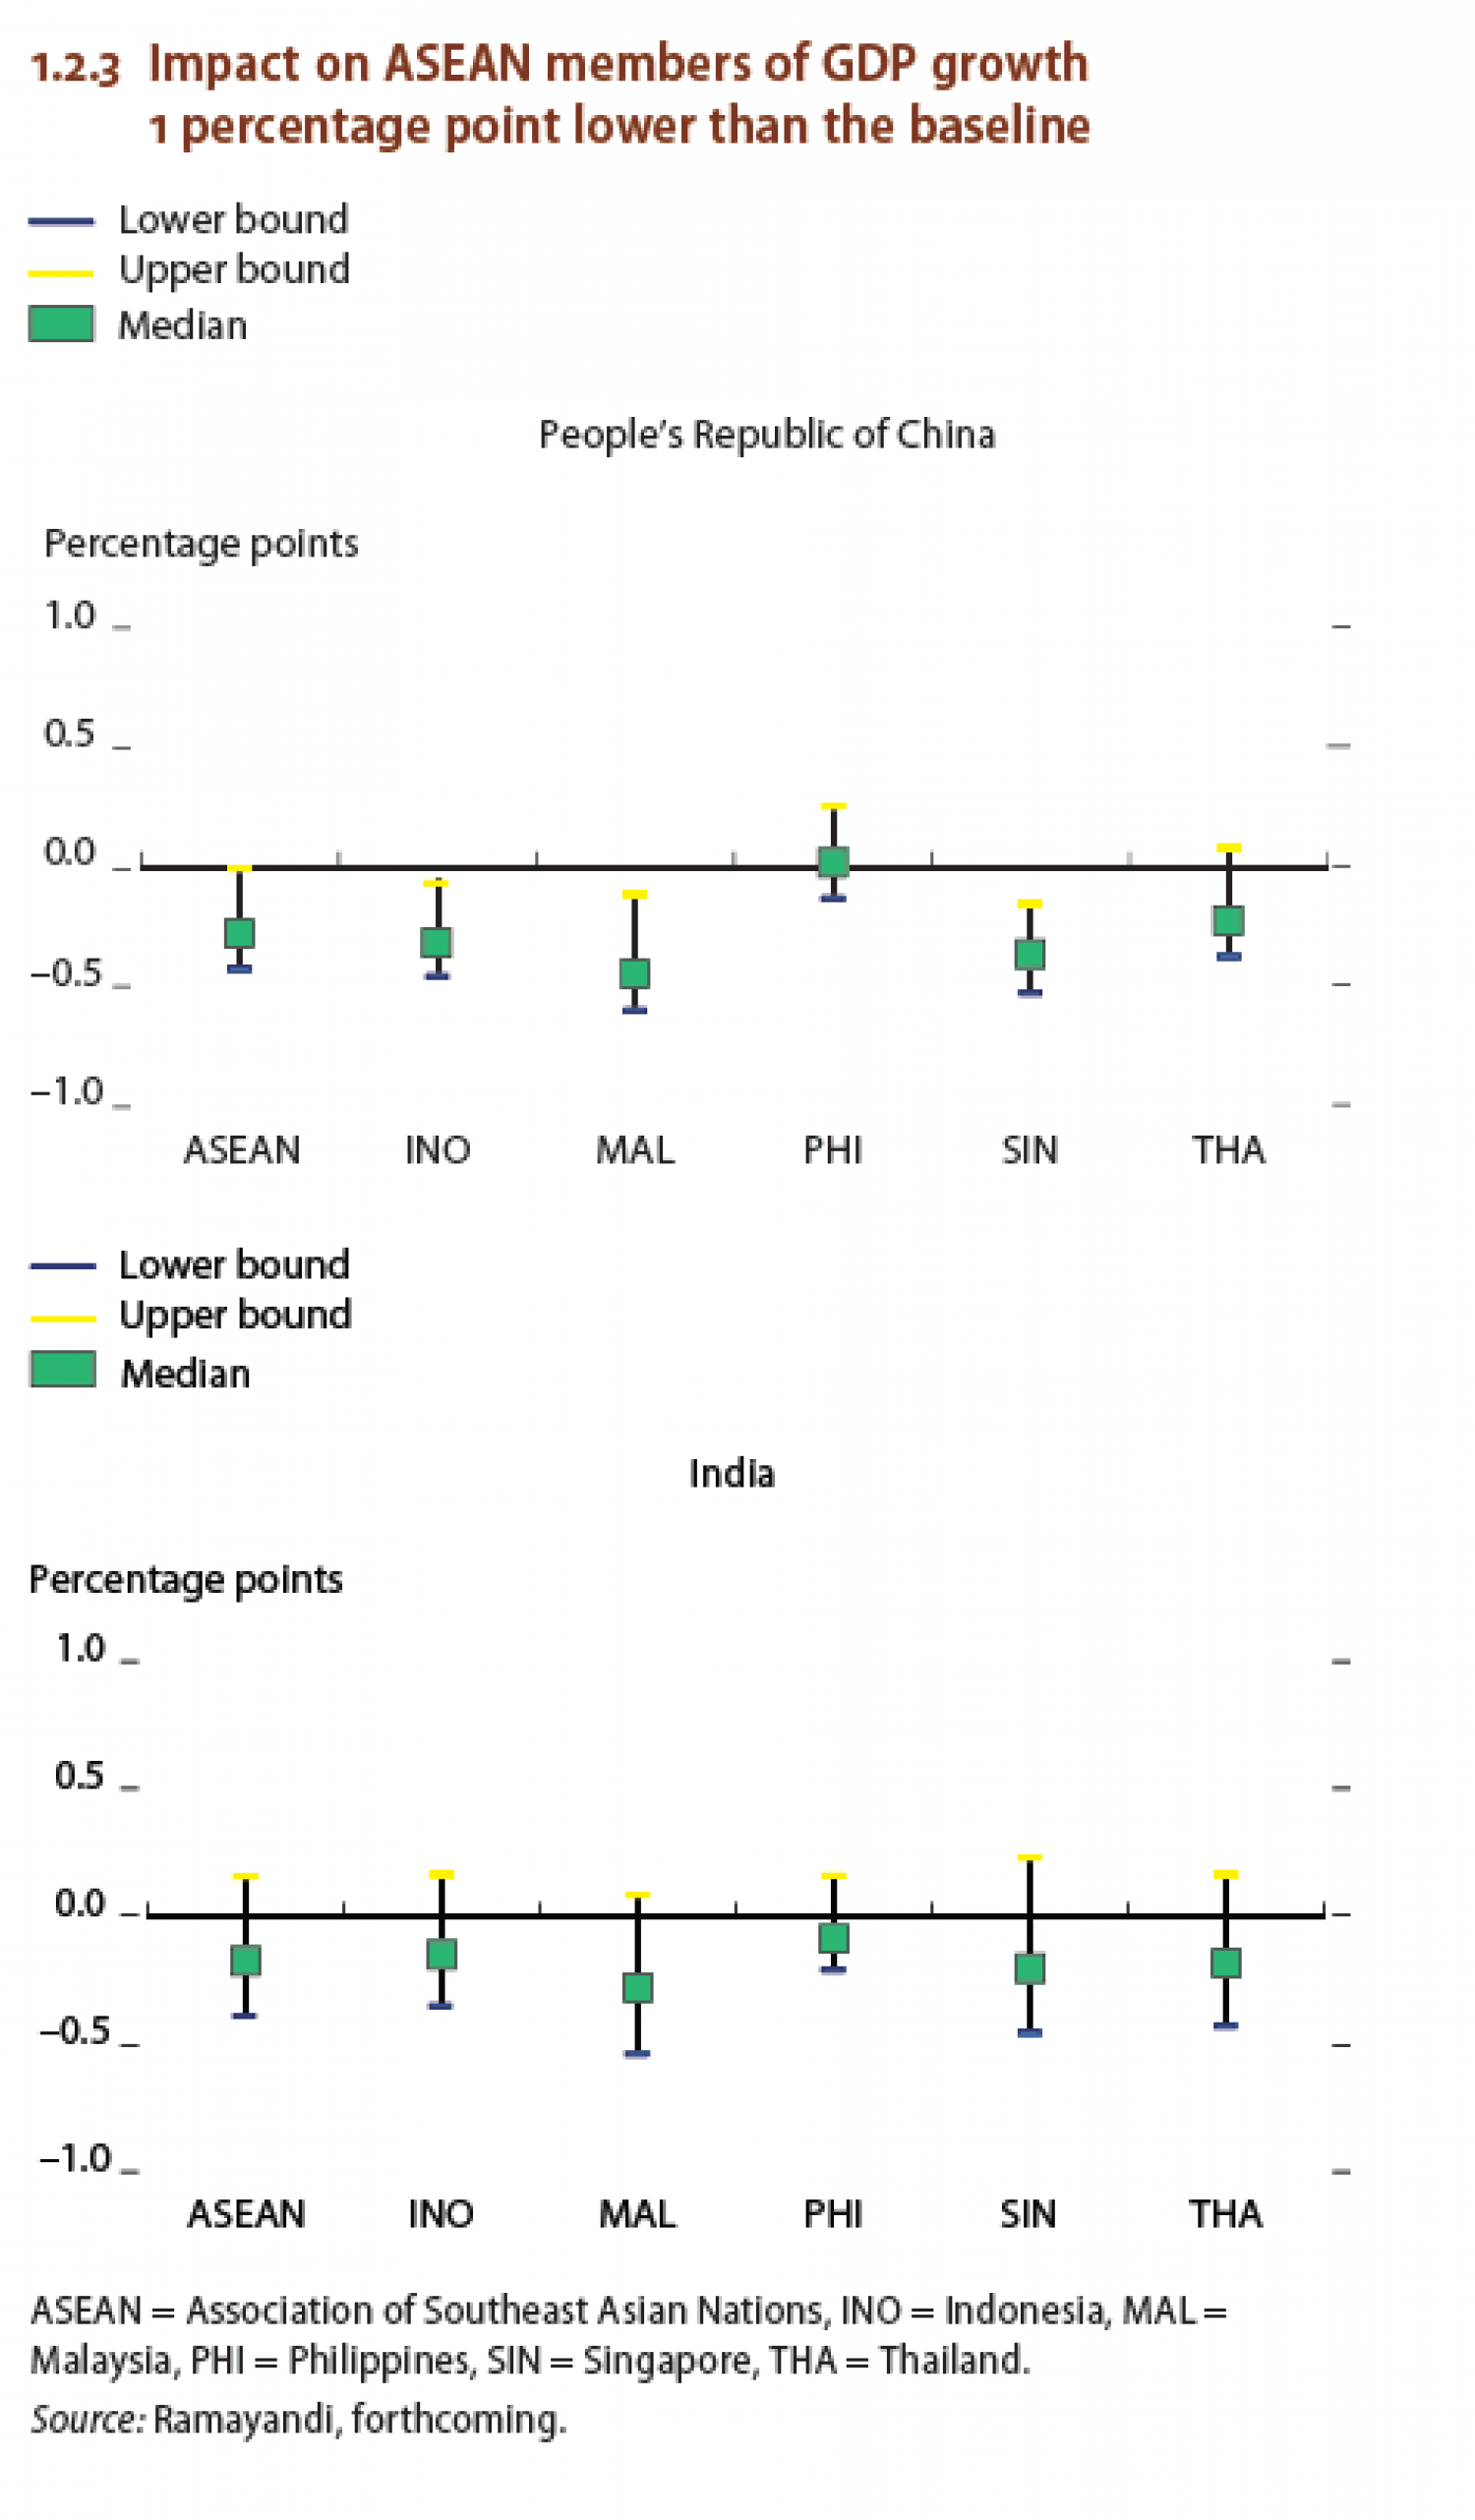 Impact on ASEAN members of GDP growth 1 percentge point lower than the baseline Infographic